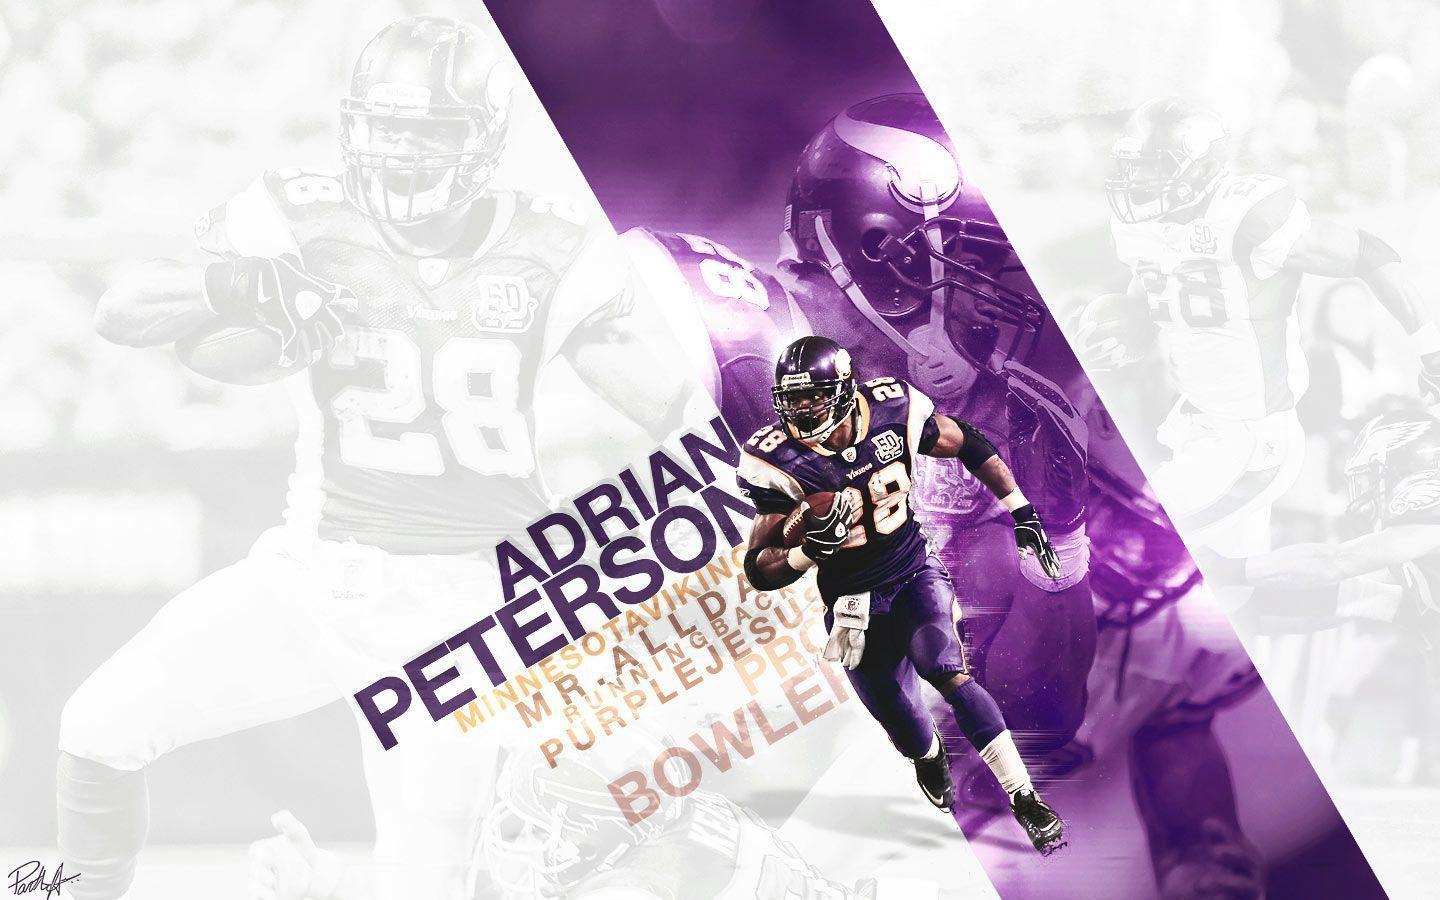 Free Wallpapers - Adrian Peterson - Minnesota Vikings wallpaper